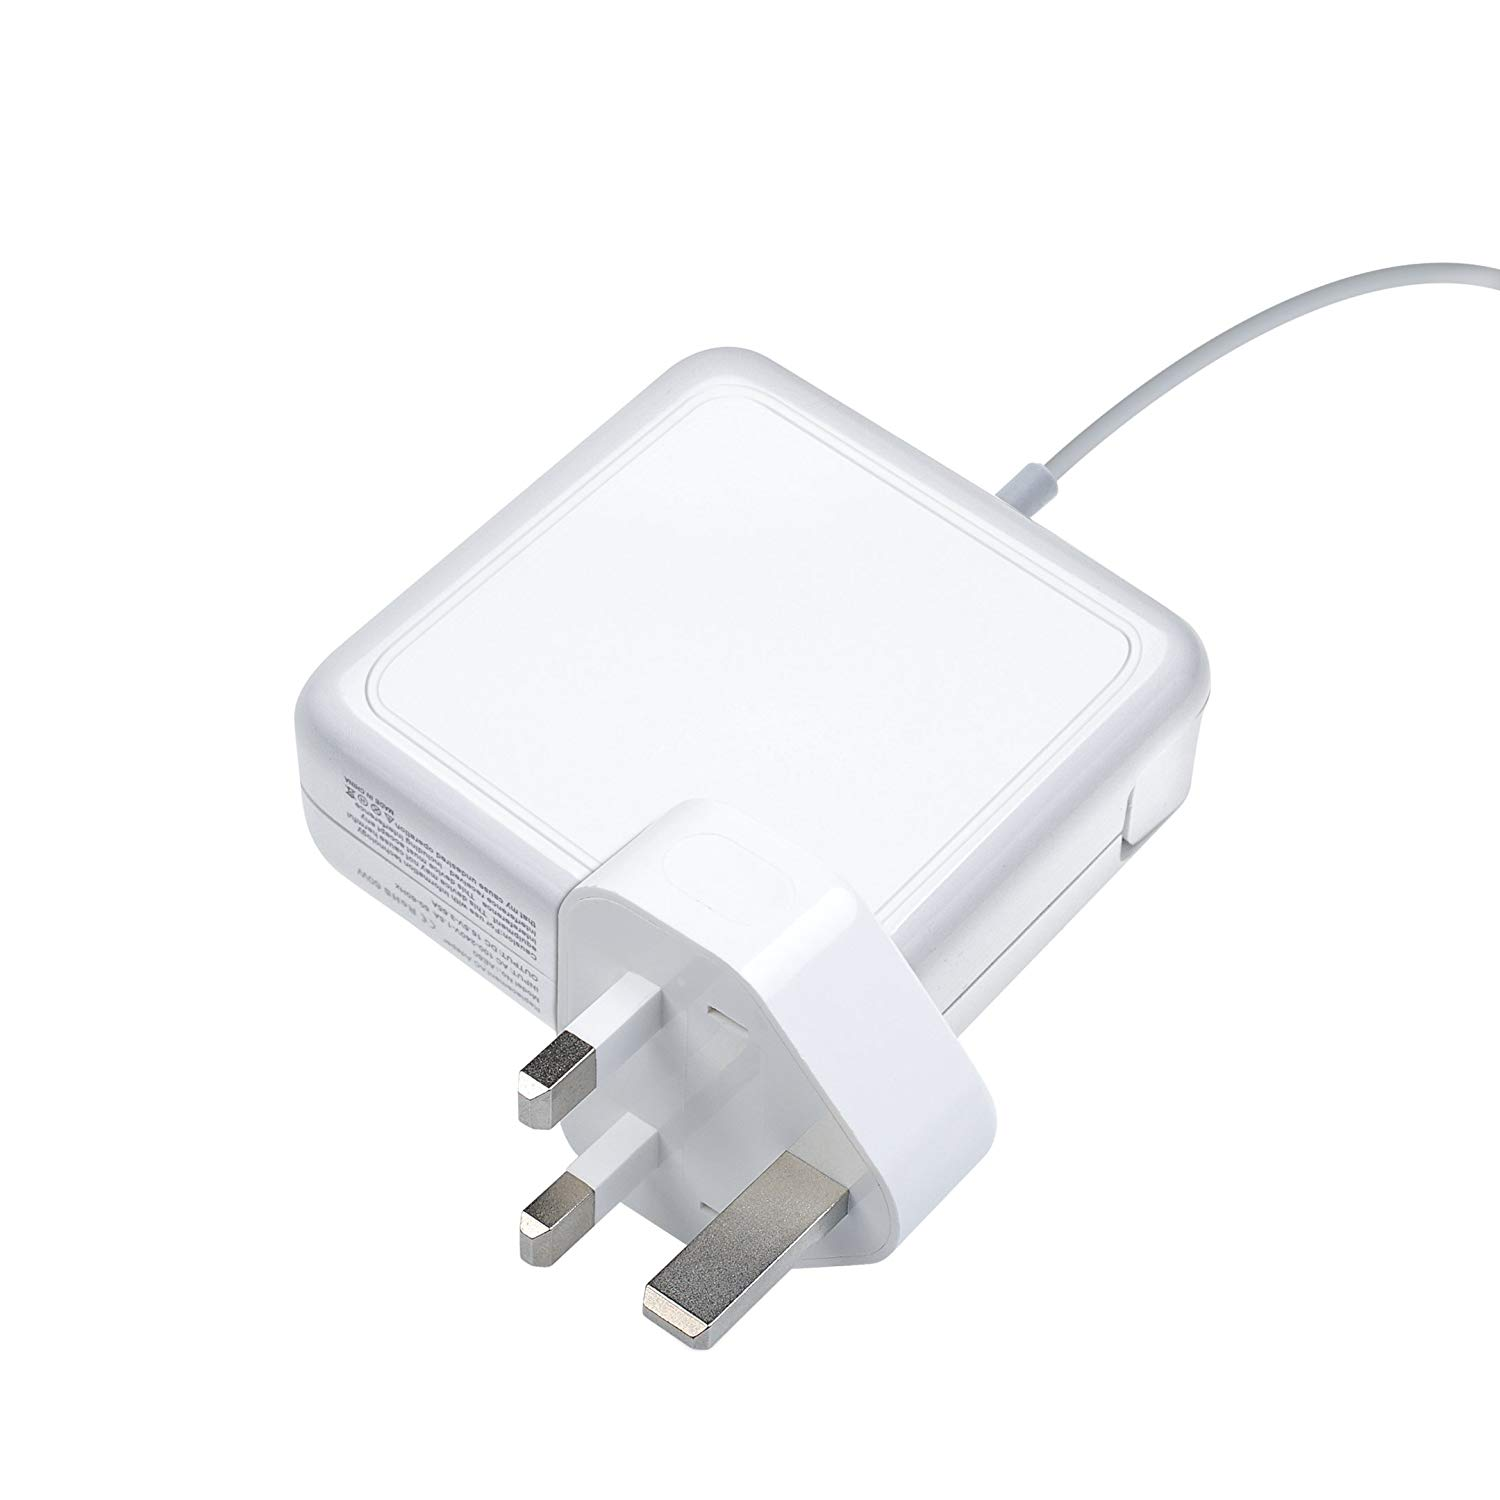 Used Macbook Pro Charger: Apple MacBook Pro Charger 45W